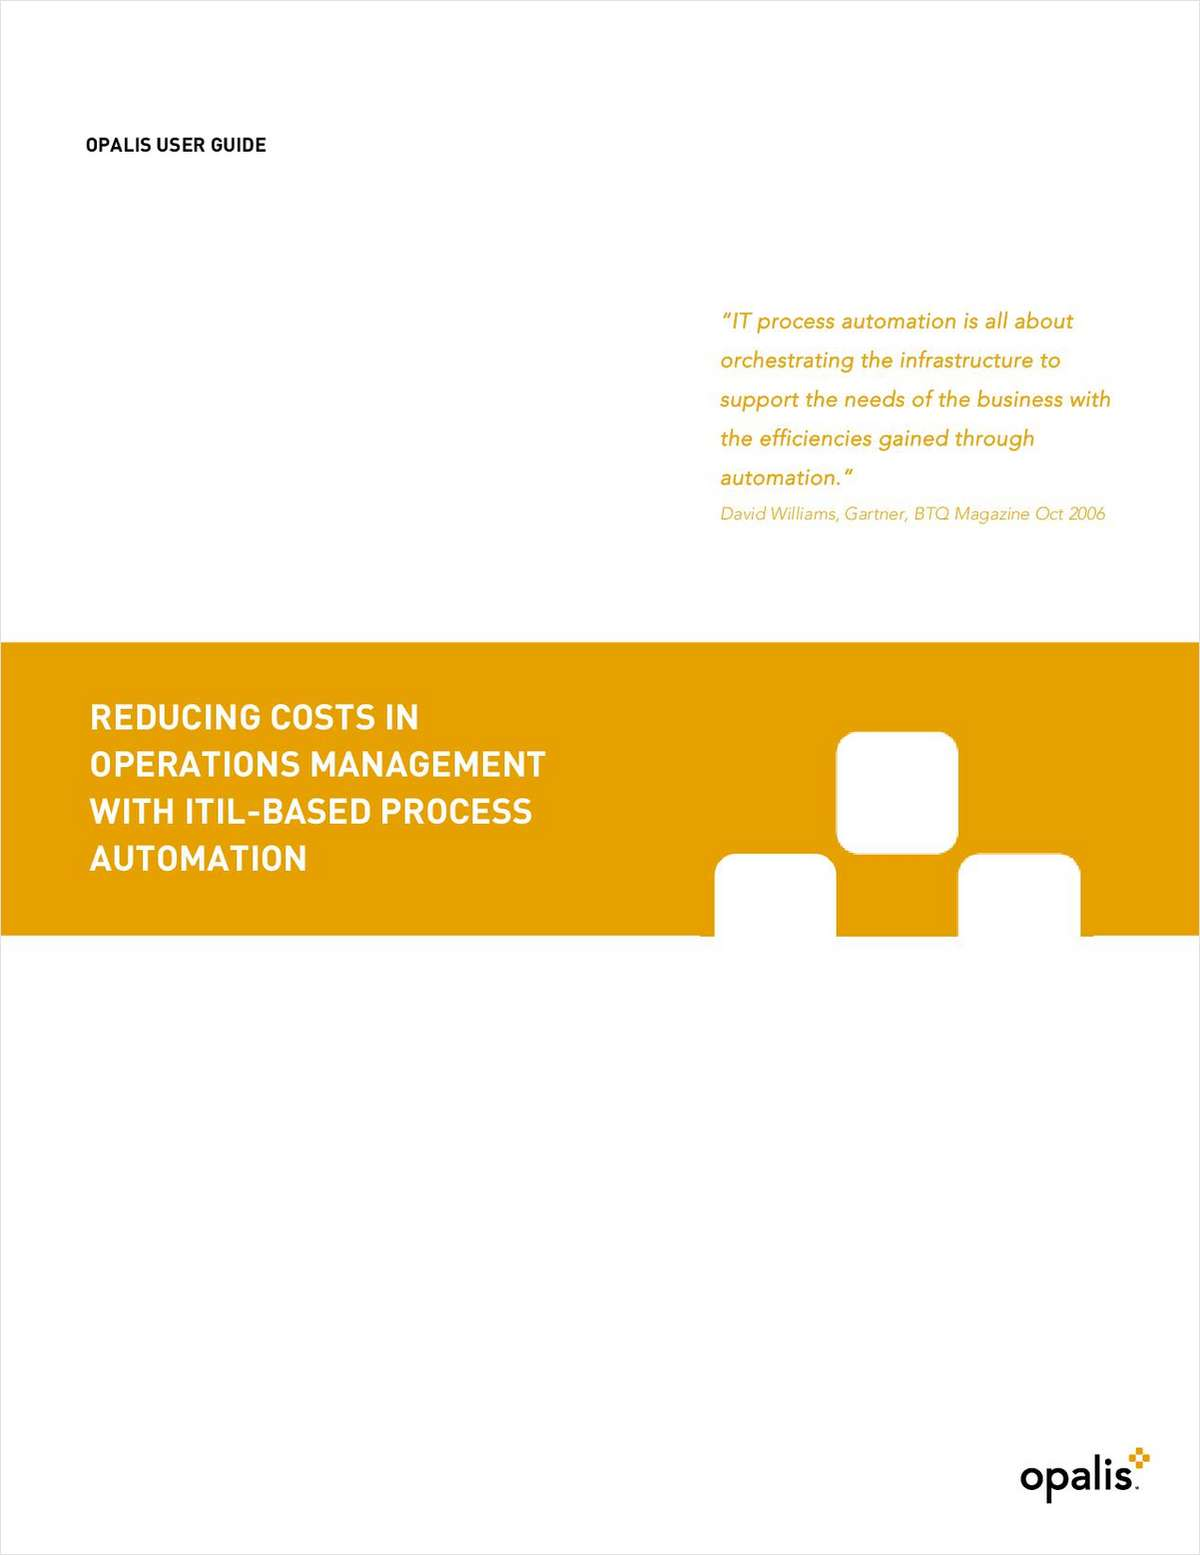 Reducing Costs in Operations Management with ITIL-Based Process Automation